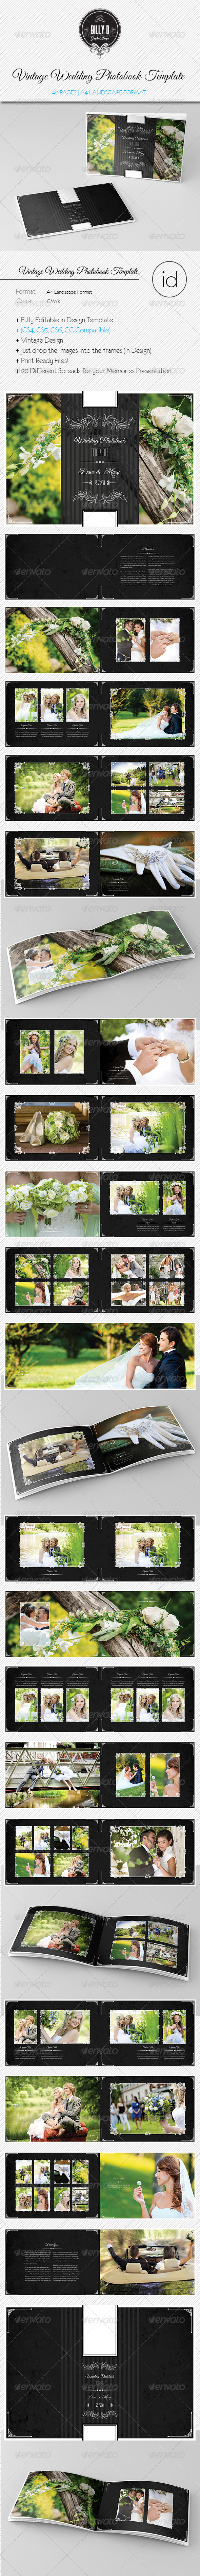 GraphicRiver 40 Pages Vintage Wedding Photobook Template 8608300